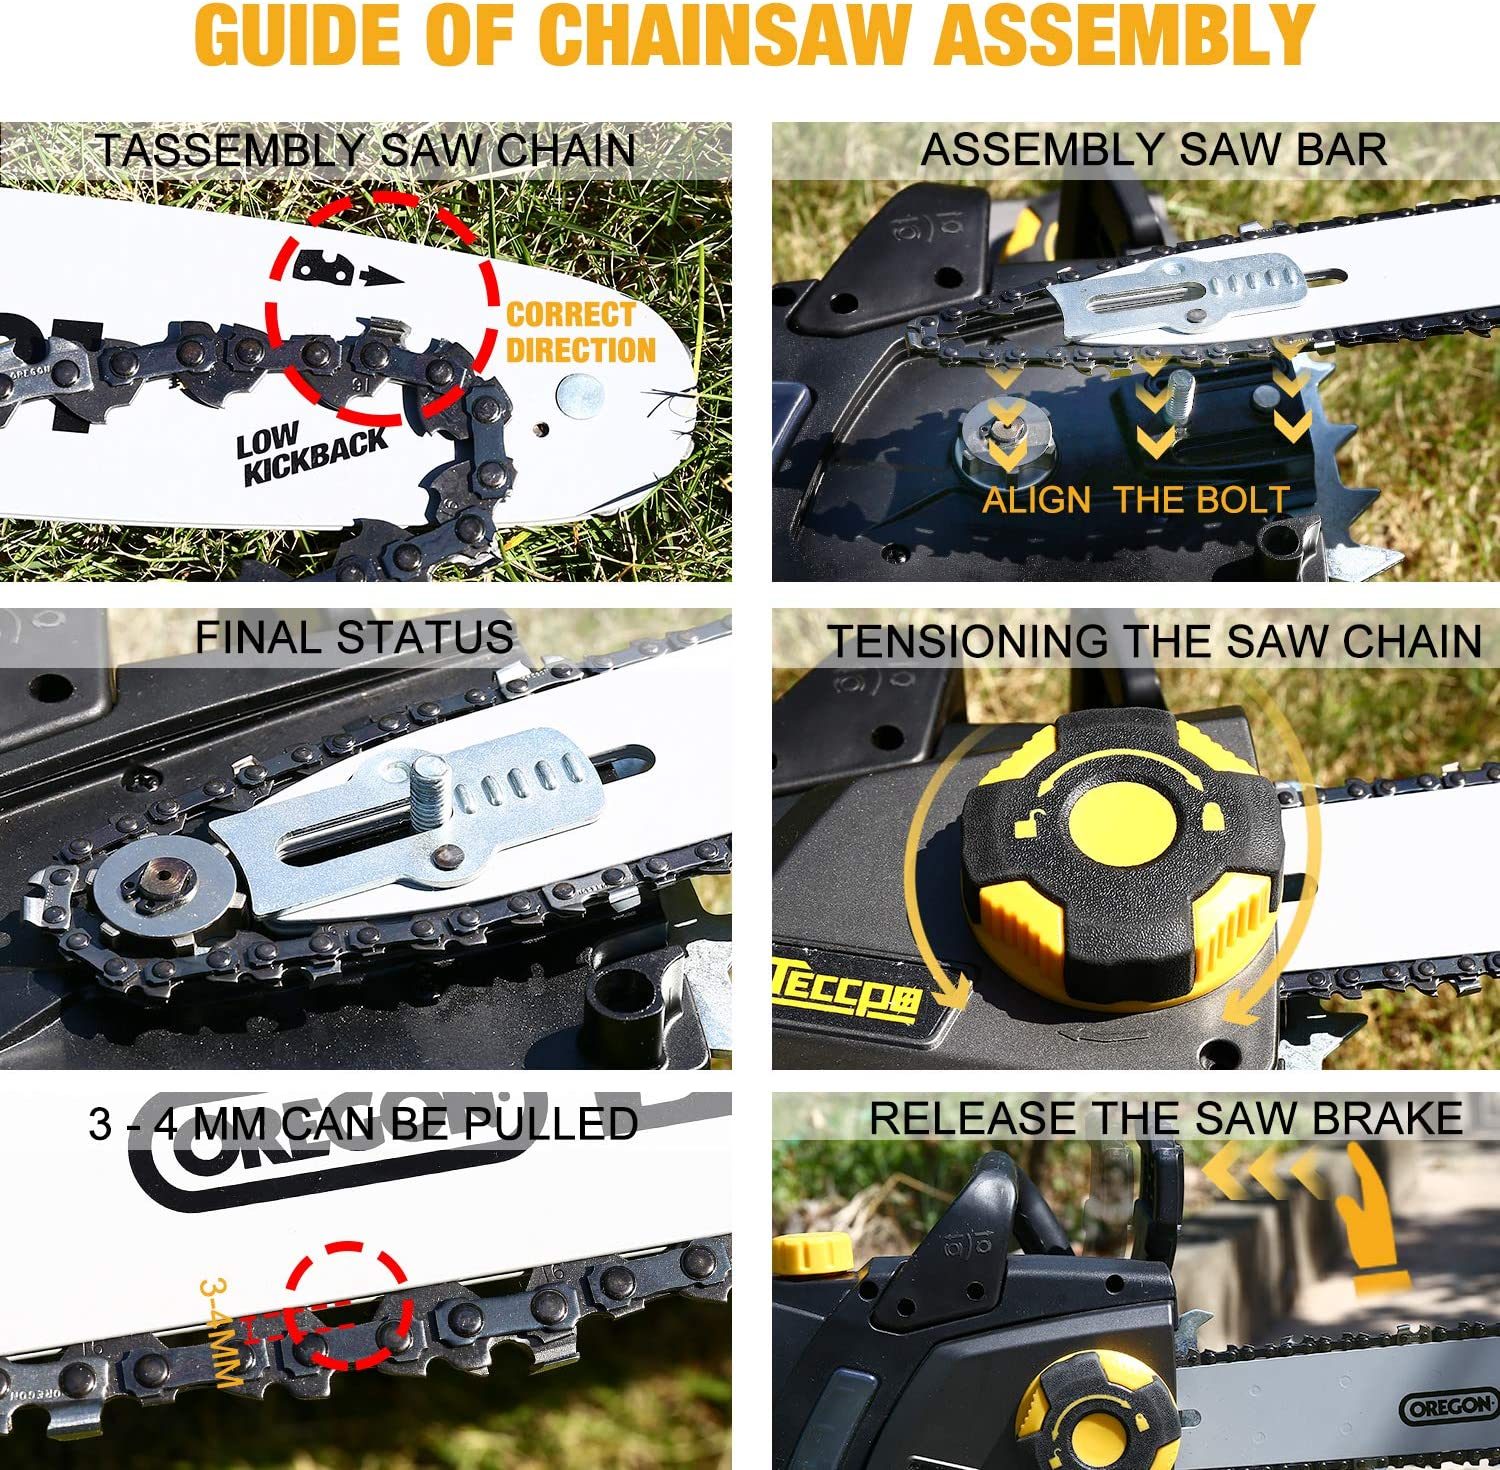 TECCPO TACS01G Chainsaws product image 4